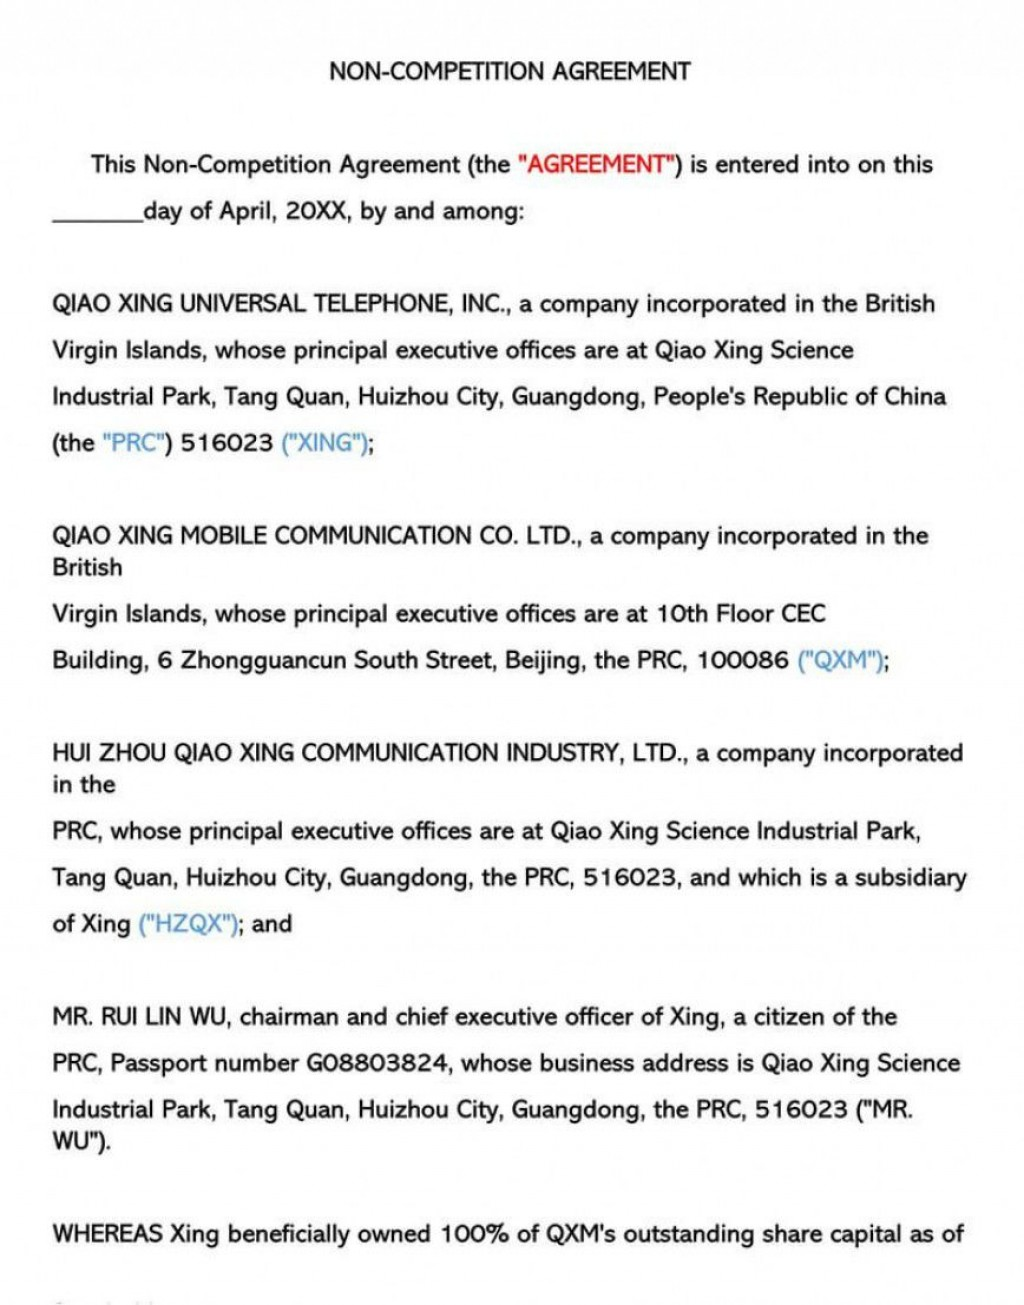 004 Surprising Non Compete Agreement Template Uk Image Large